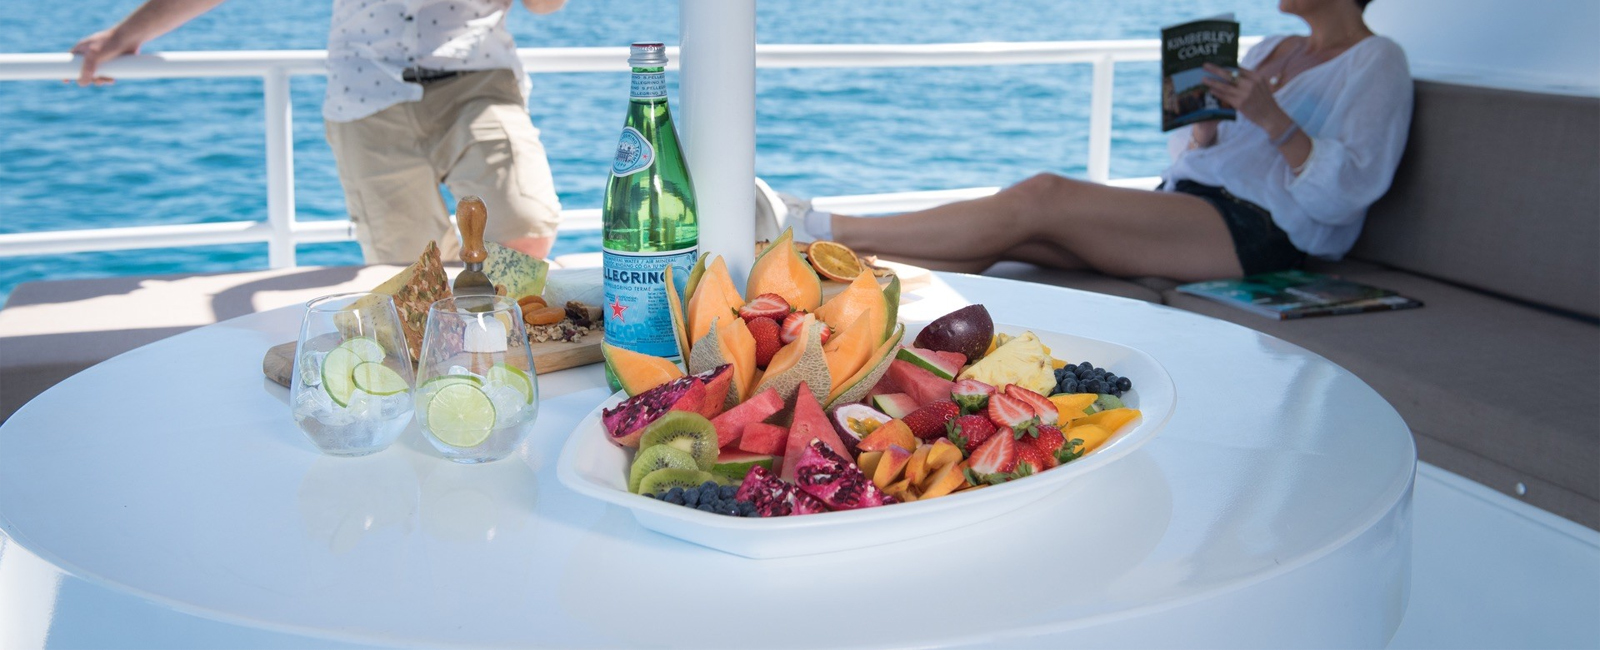 KIMBERLEY-PEARL-boat-charters-food-and-drinks